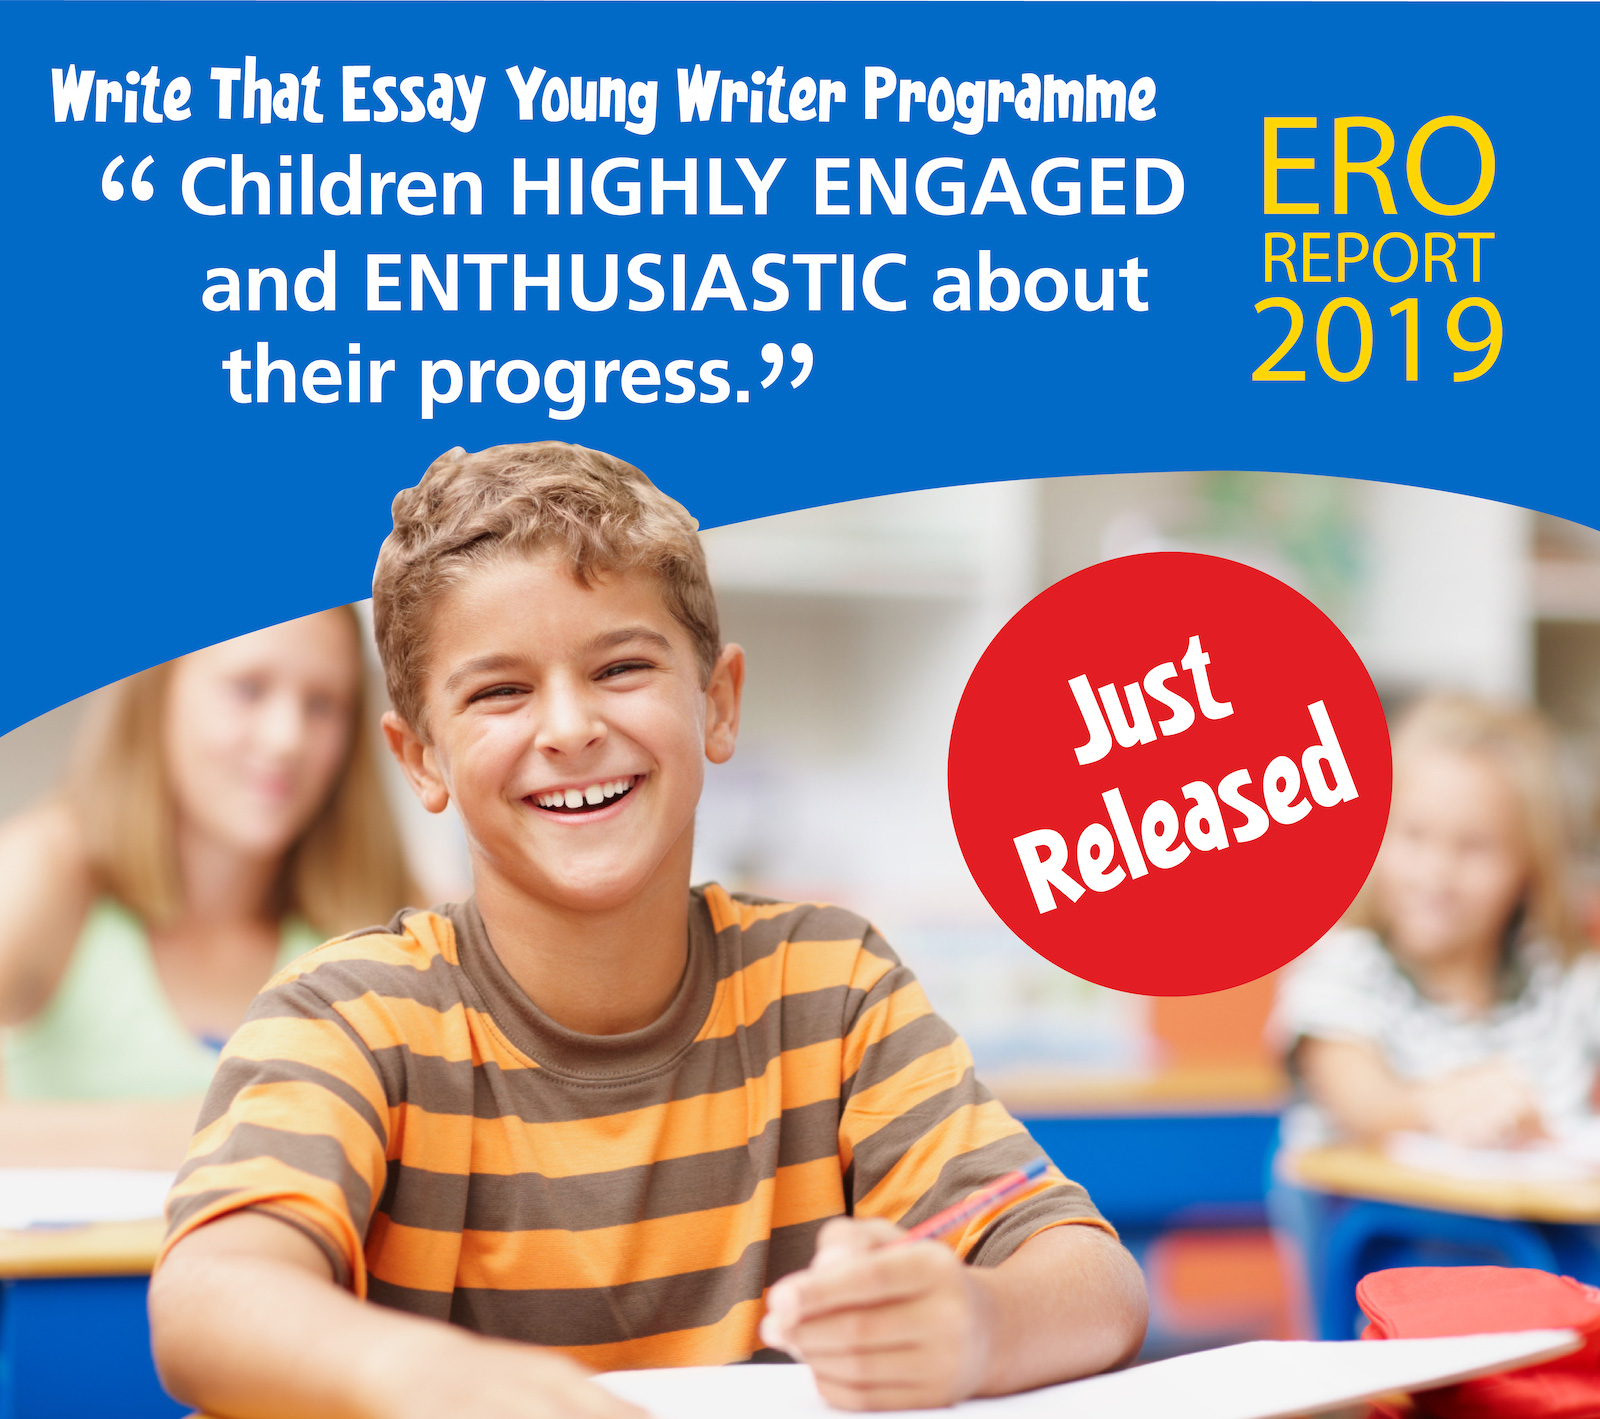 j10197 Write That Essay ERO web banner 1240pxW x 1100pxH draft 03 1 03